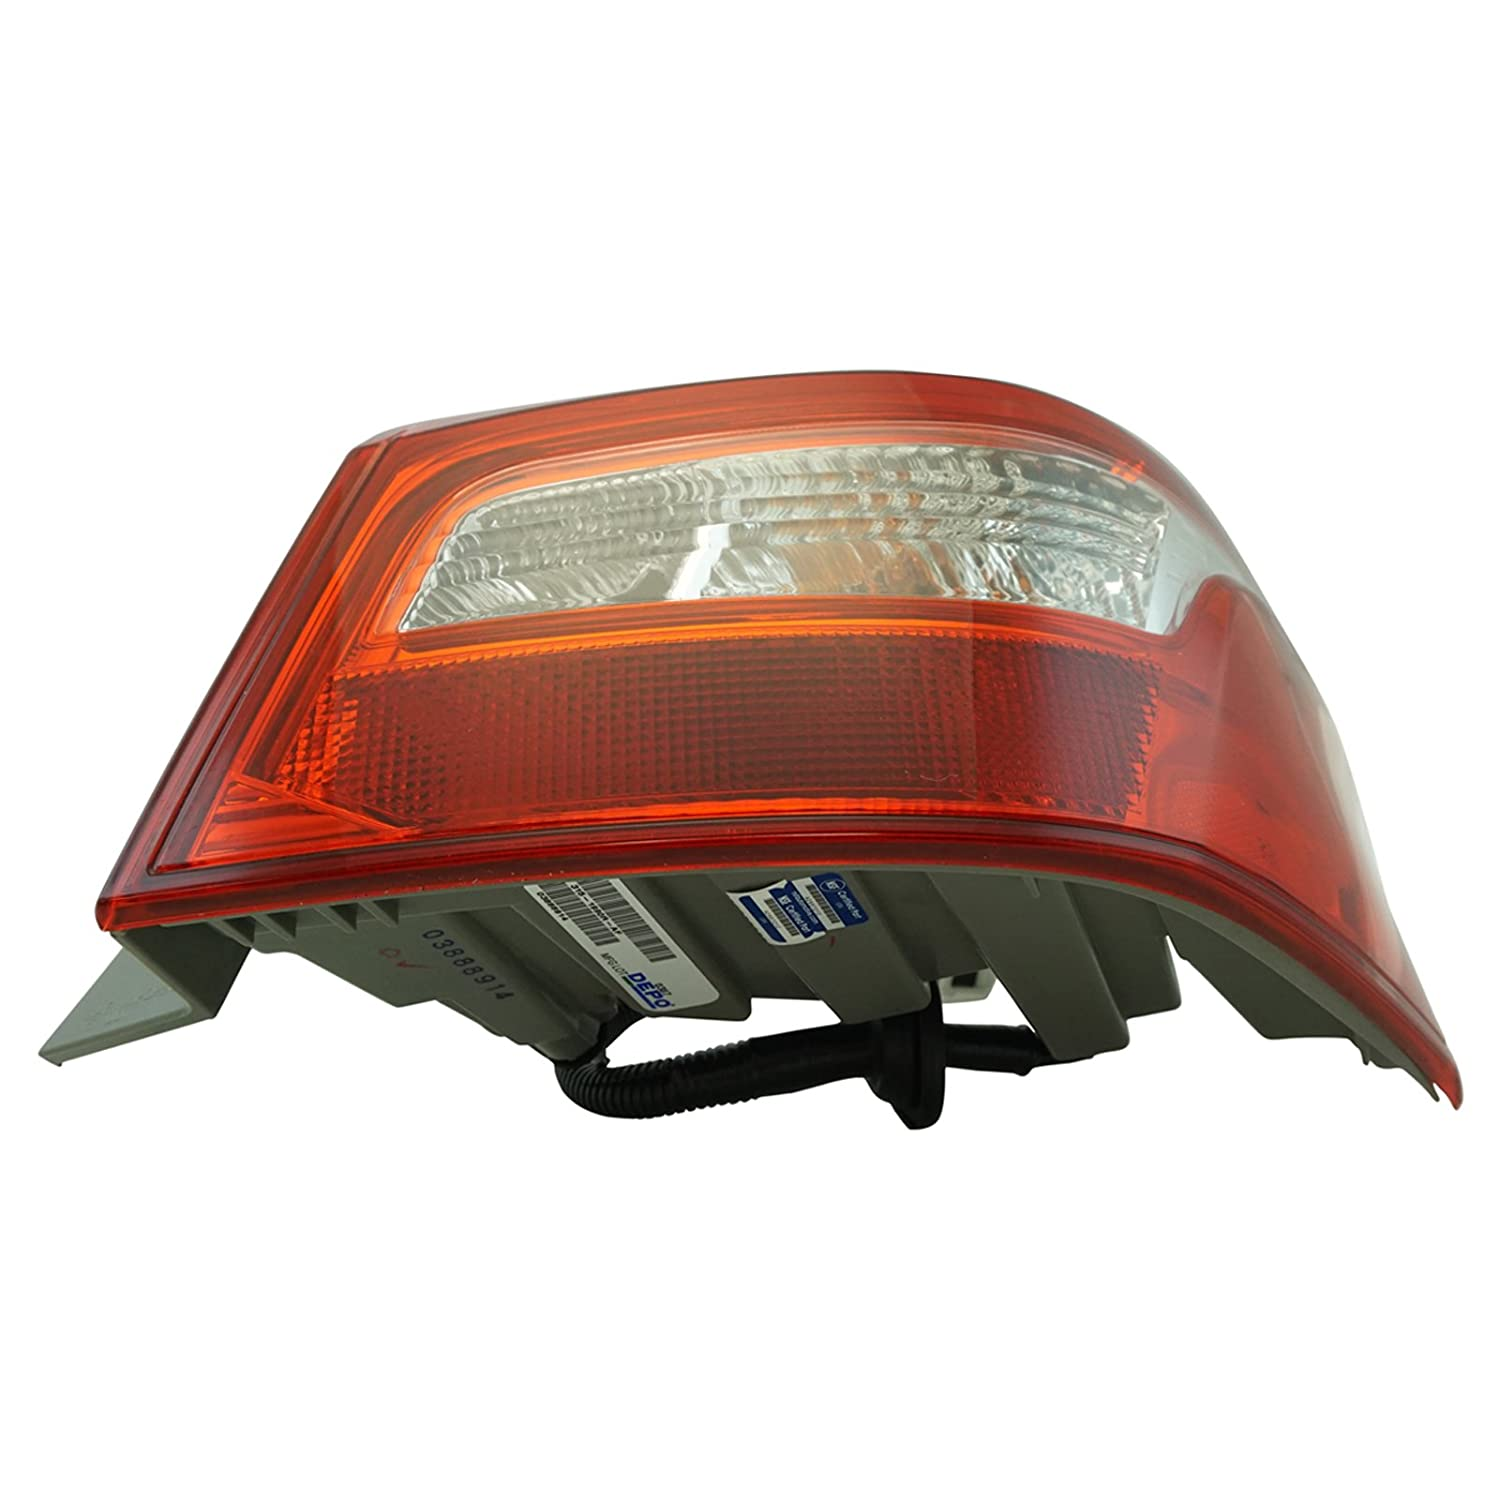 Outer Tail Light Lamp Assembly LH RH Kit Pair Set of 2 for Nissan Sentra New